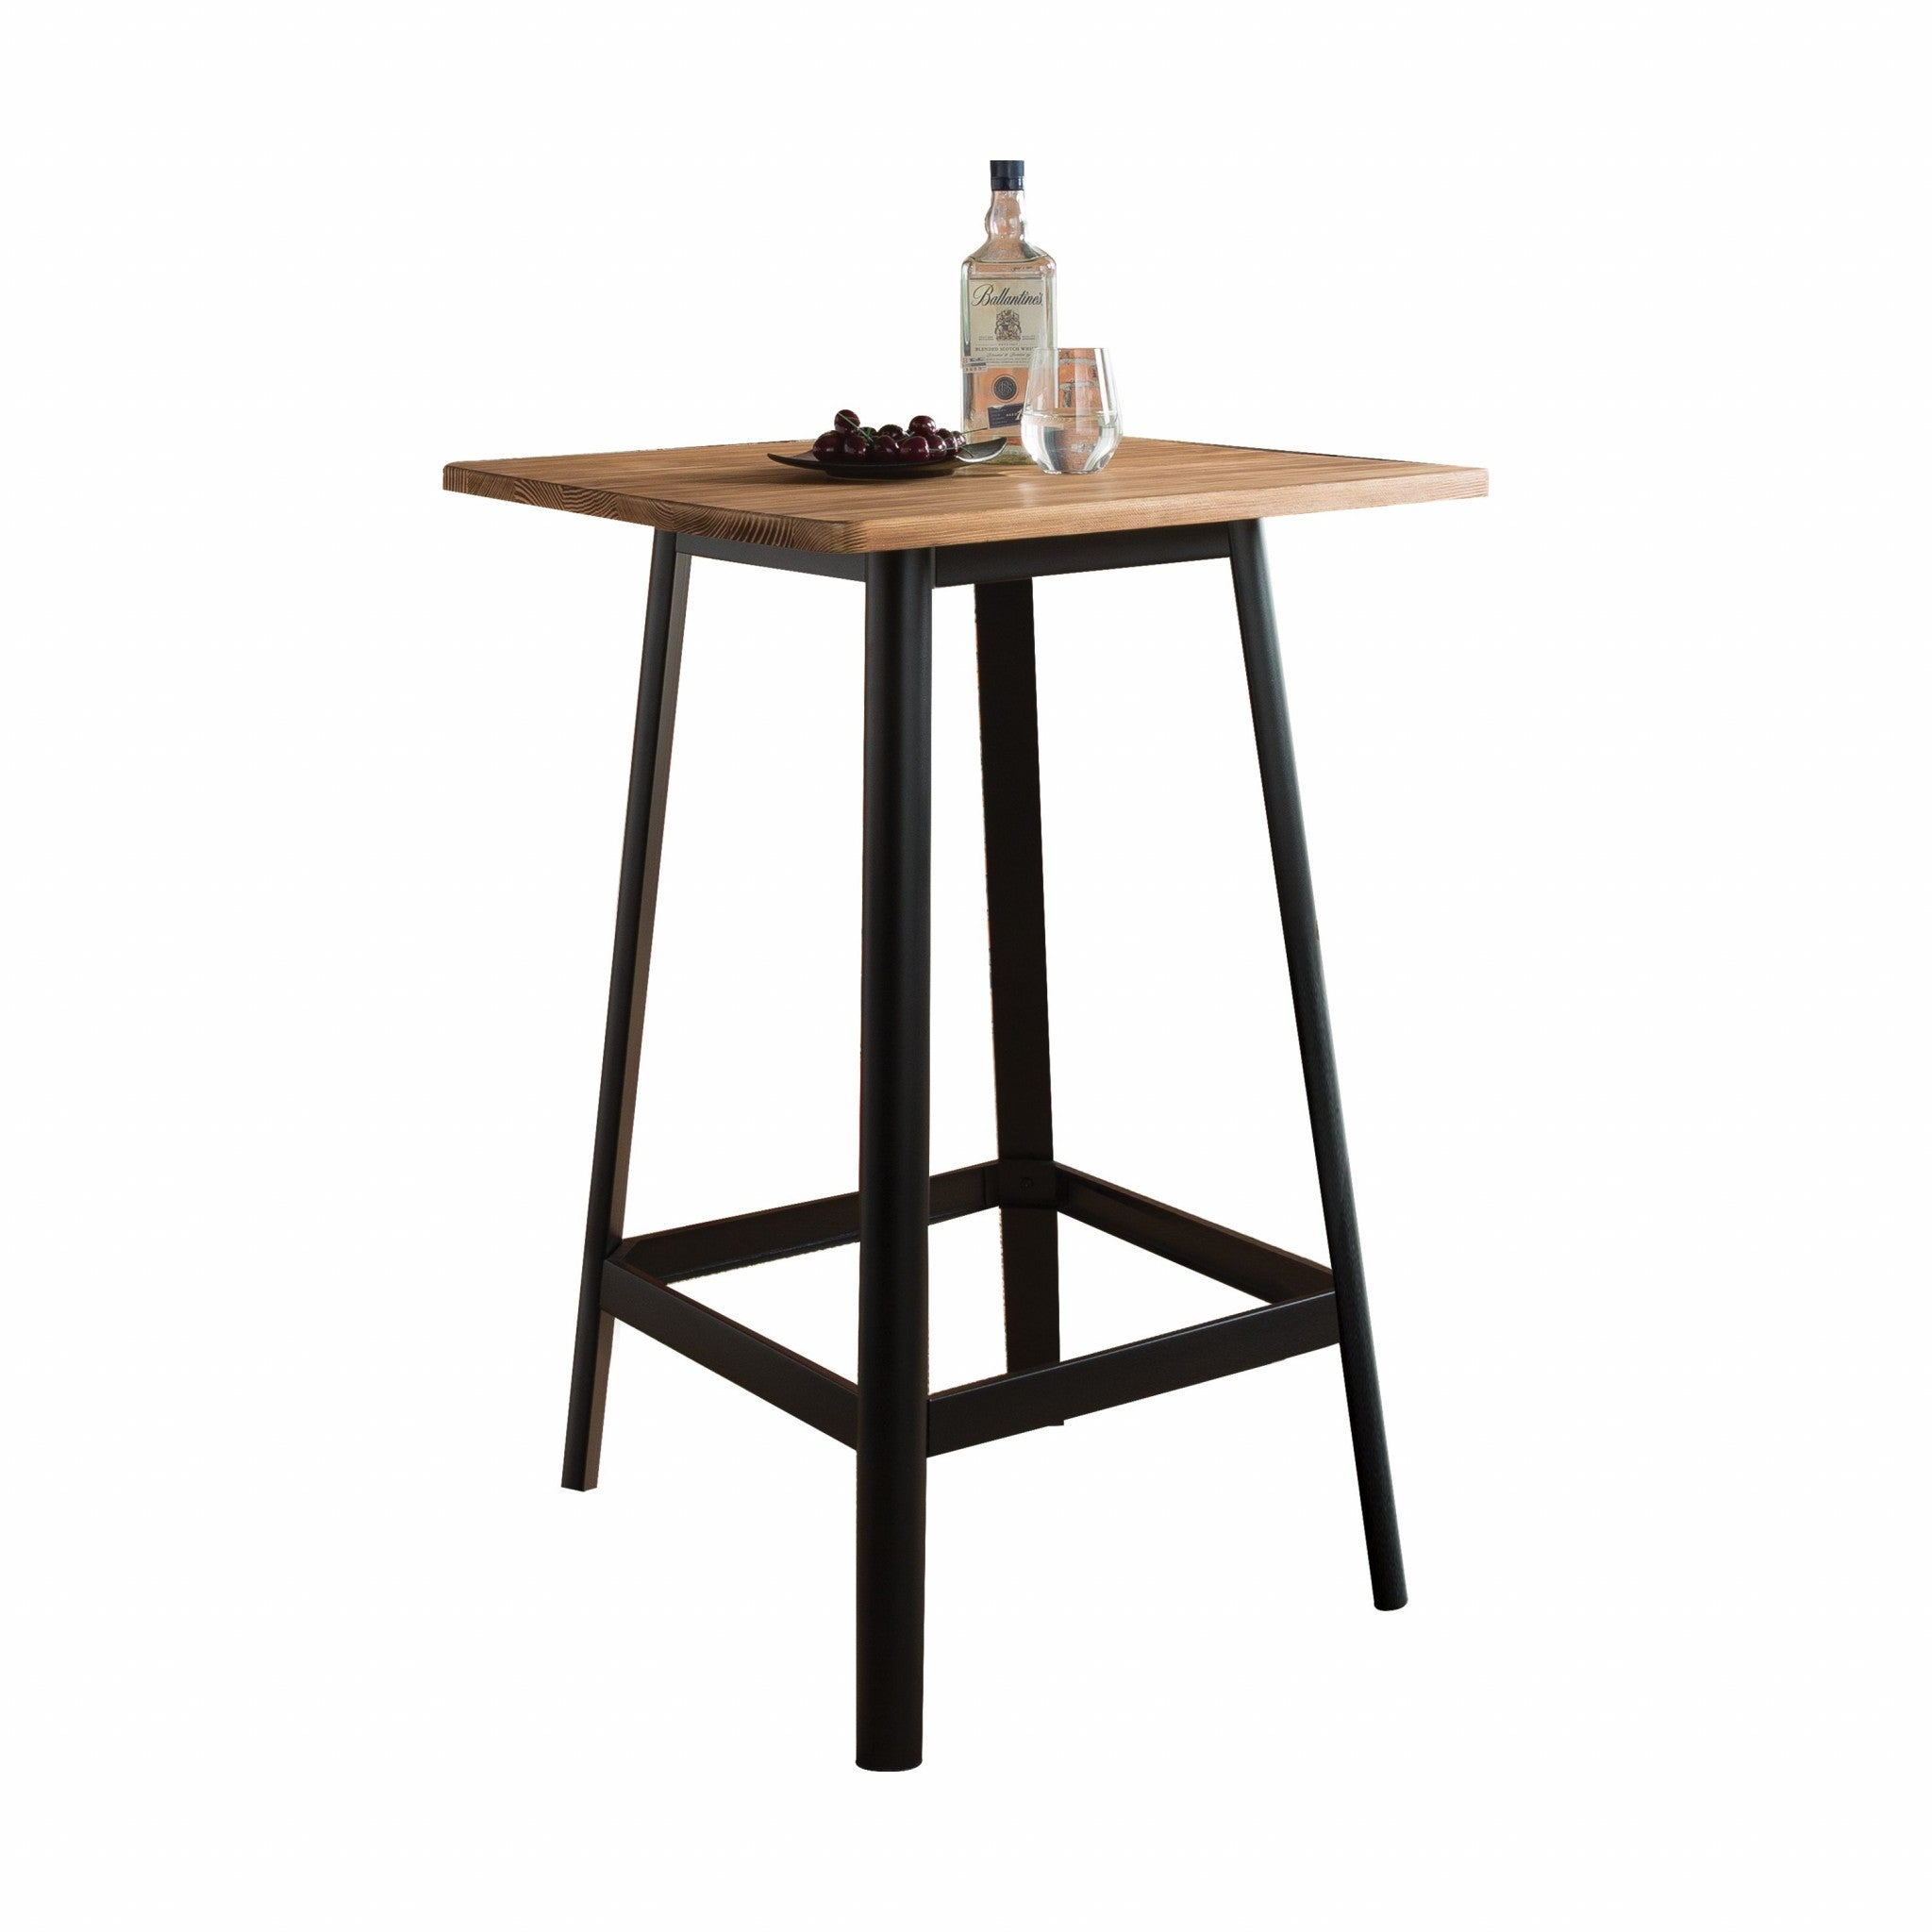 "28"" X 28"" X 41"" Natural & Black Wood Bar Table"